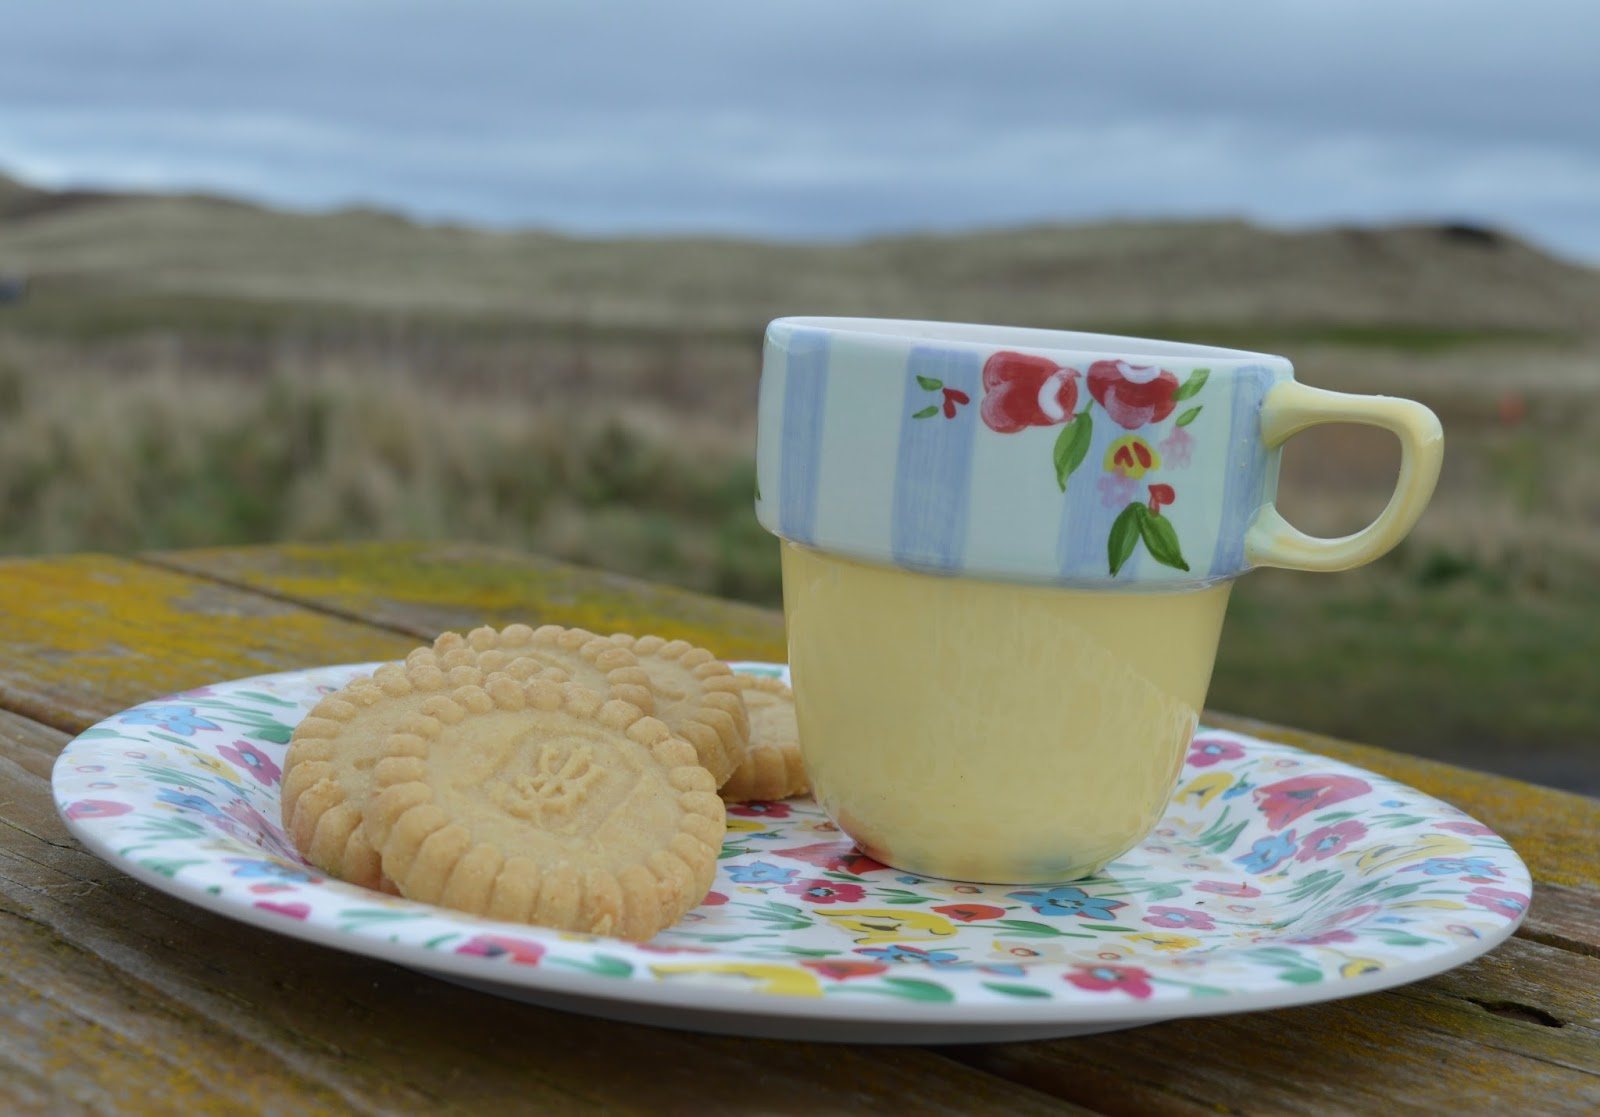 Ringtons tea and biscuits at Warkworth beach